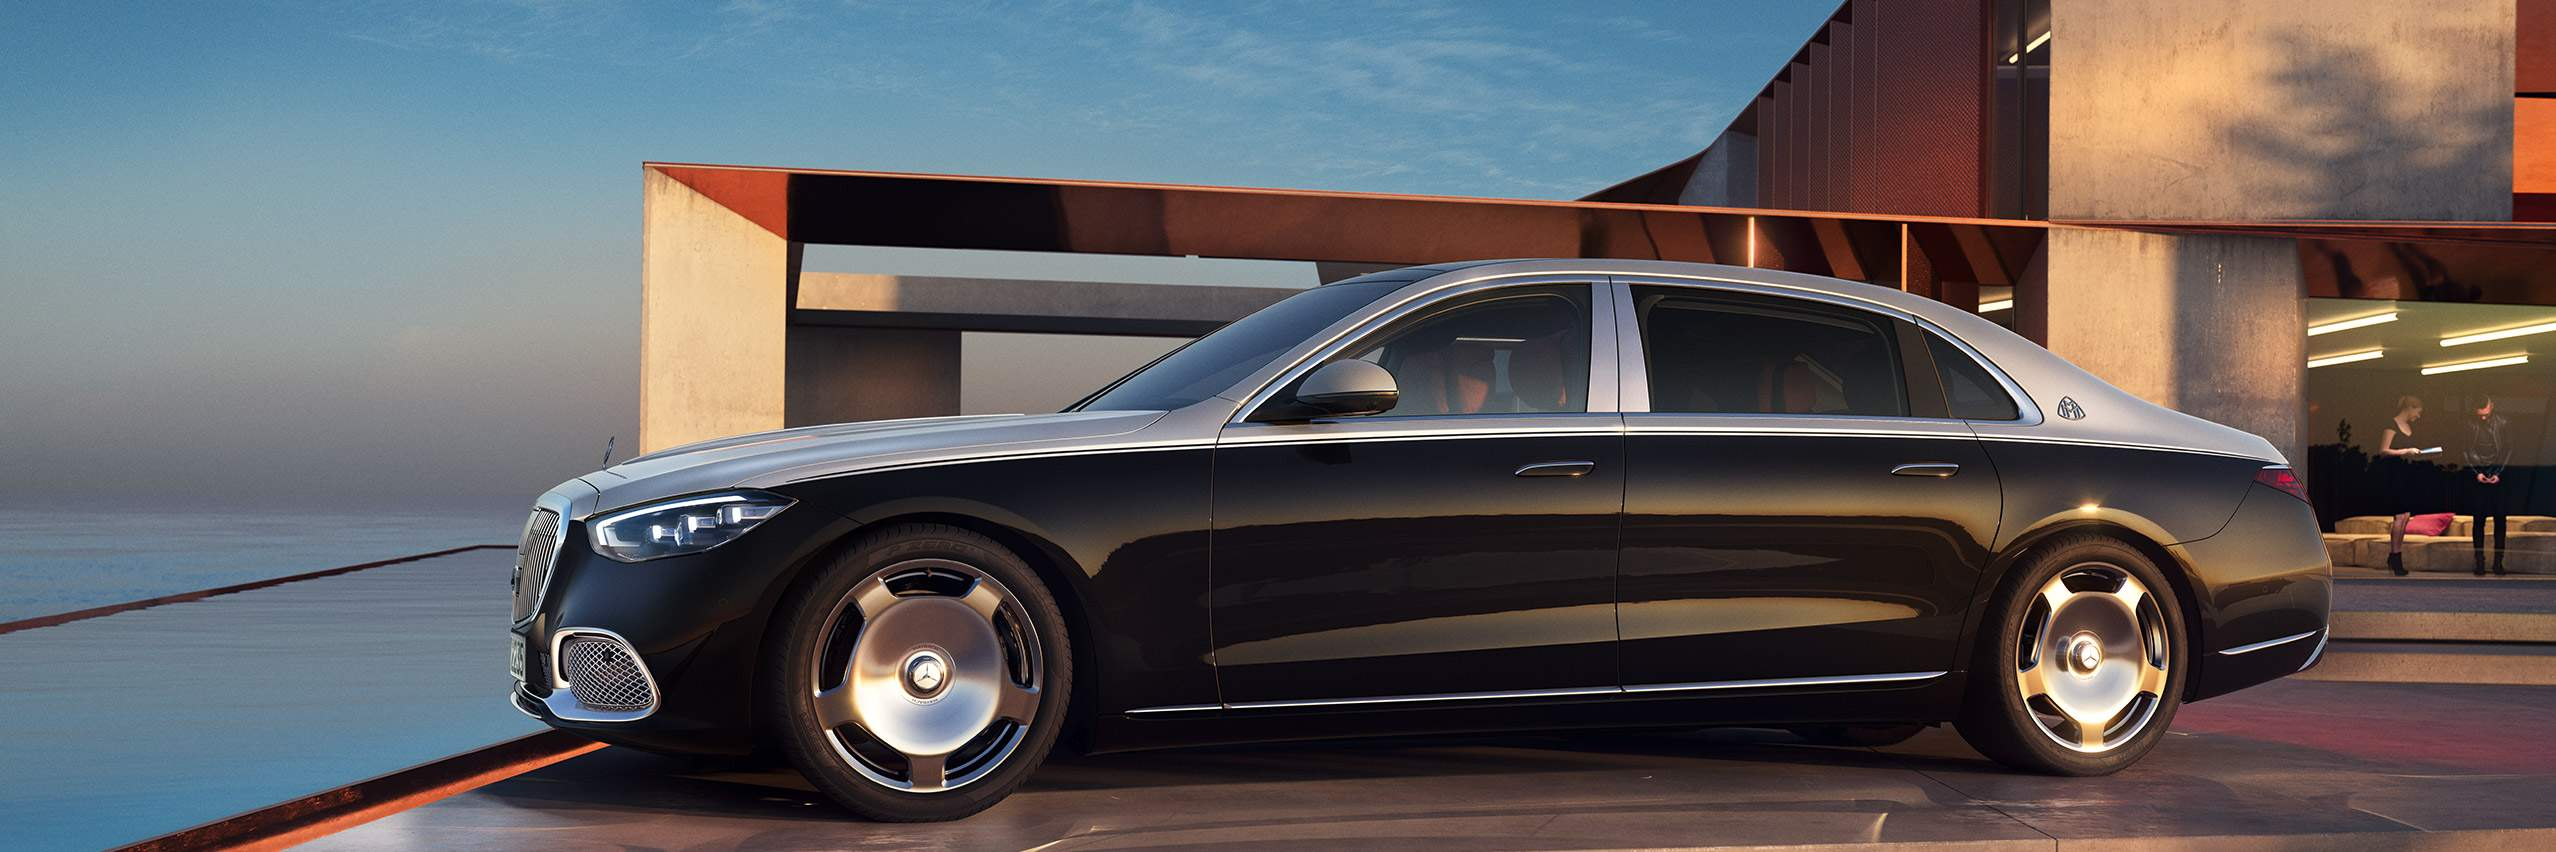 Mercedes-Classe-S-Maybach-06